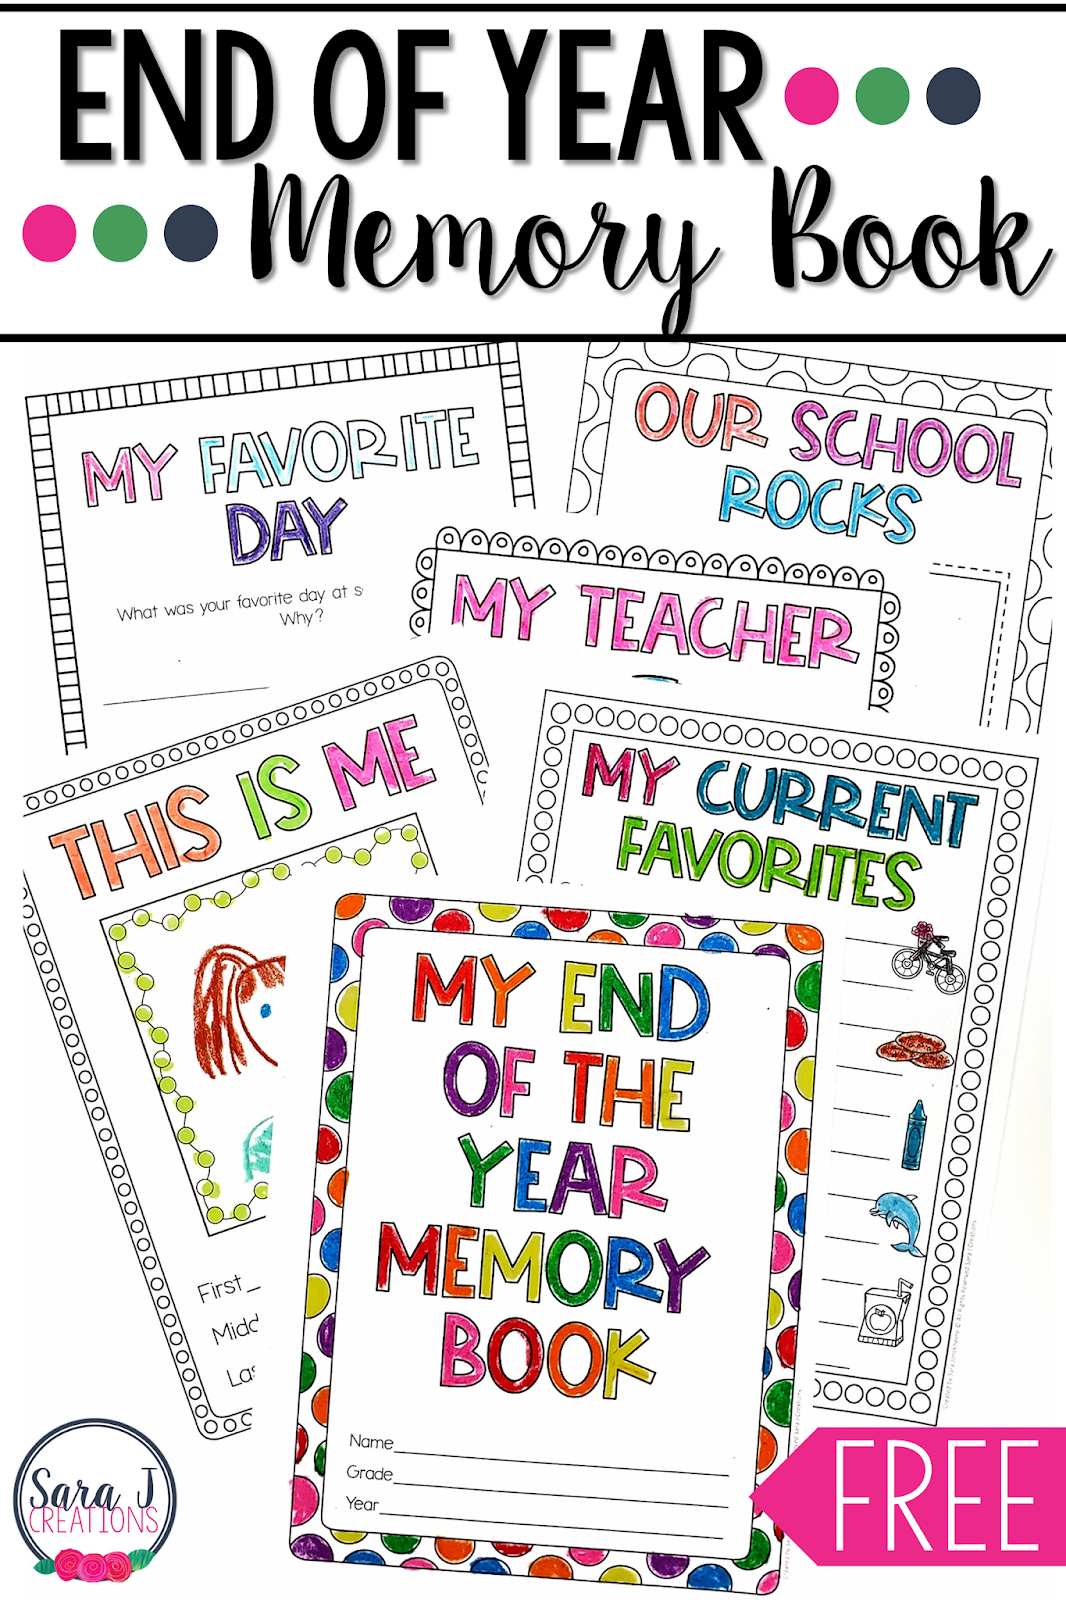 Try out this free printable memory book to help your students reflect on their year. Perfect for the last week of the school year before they are ready for summer!!!